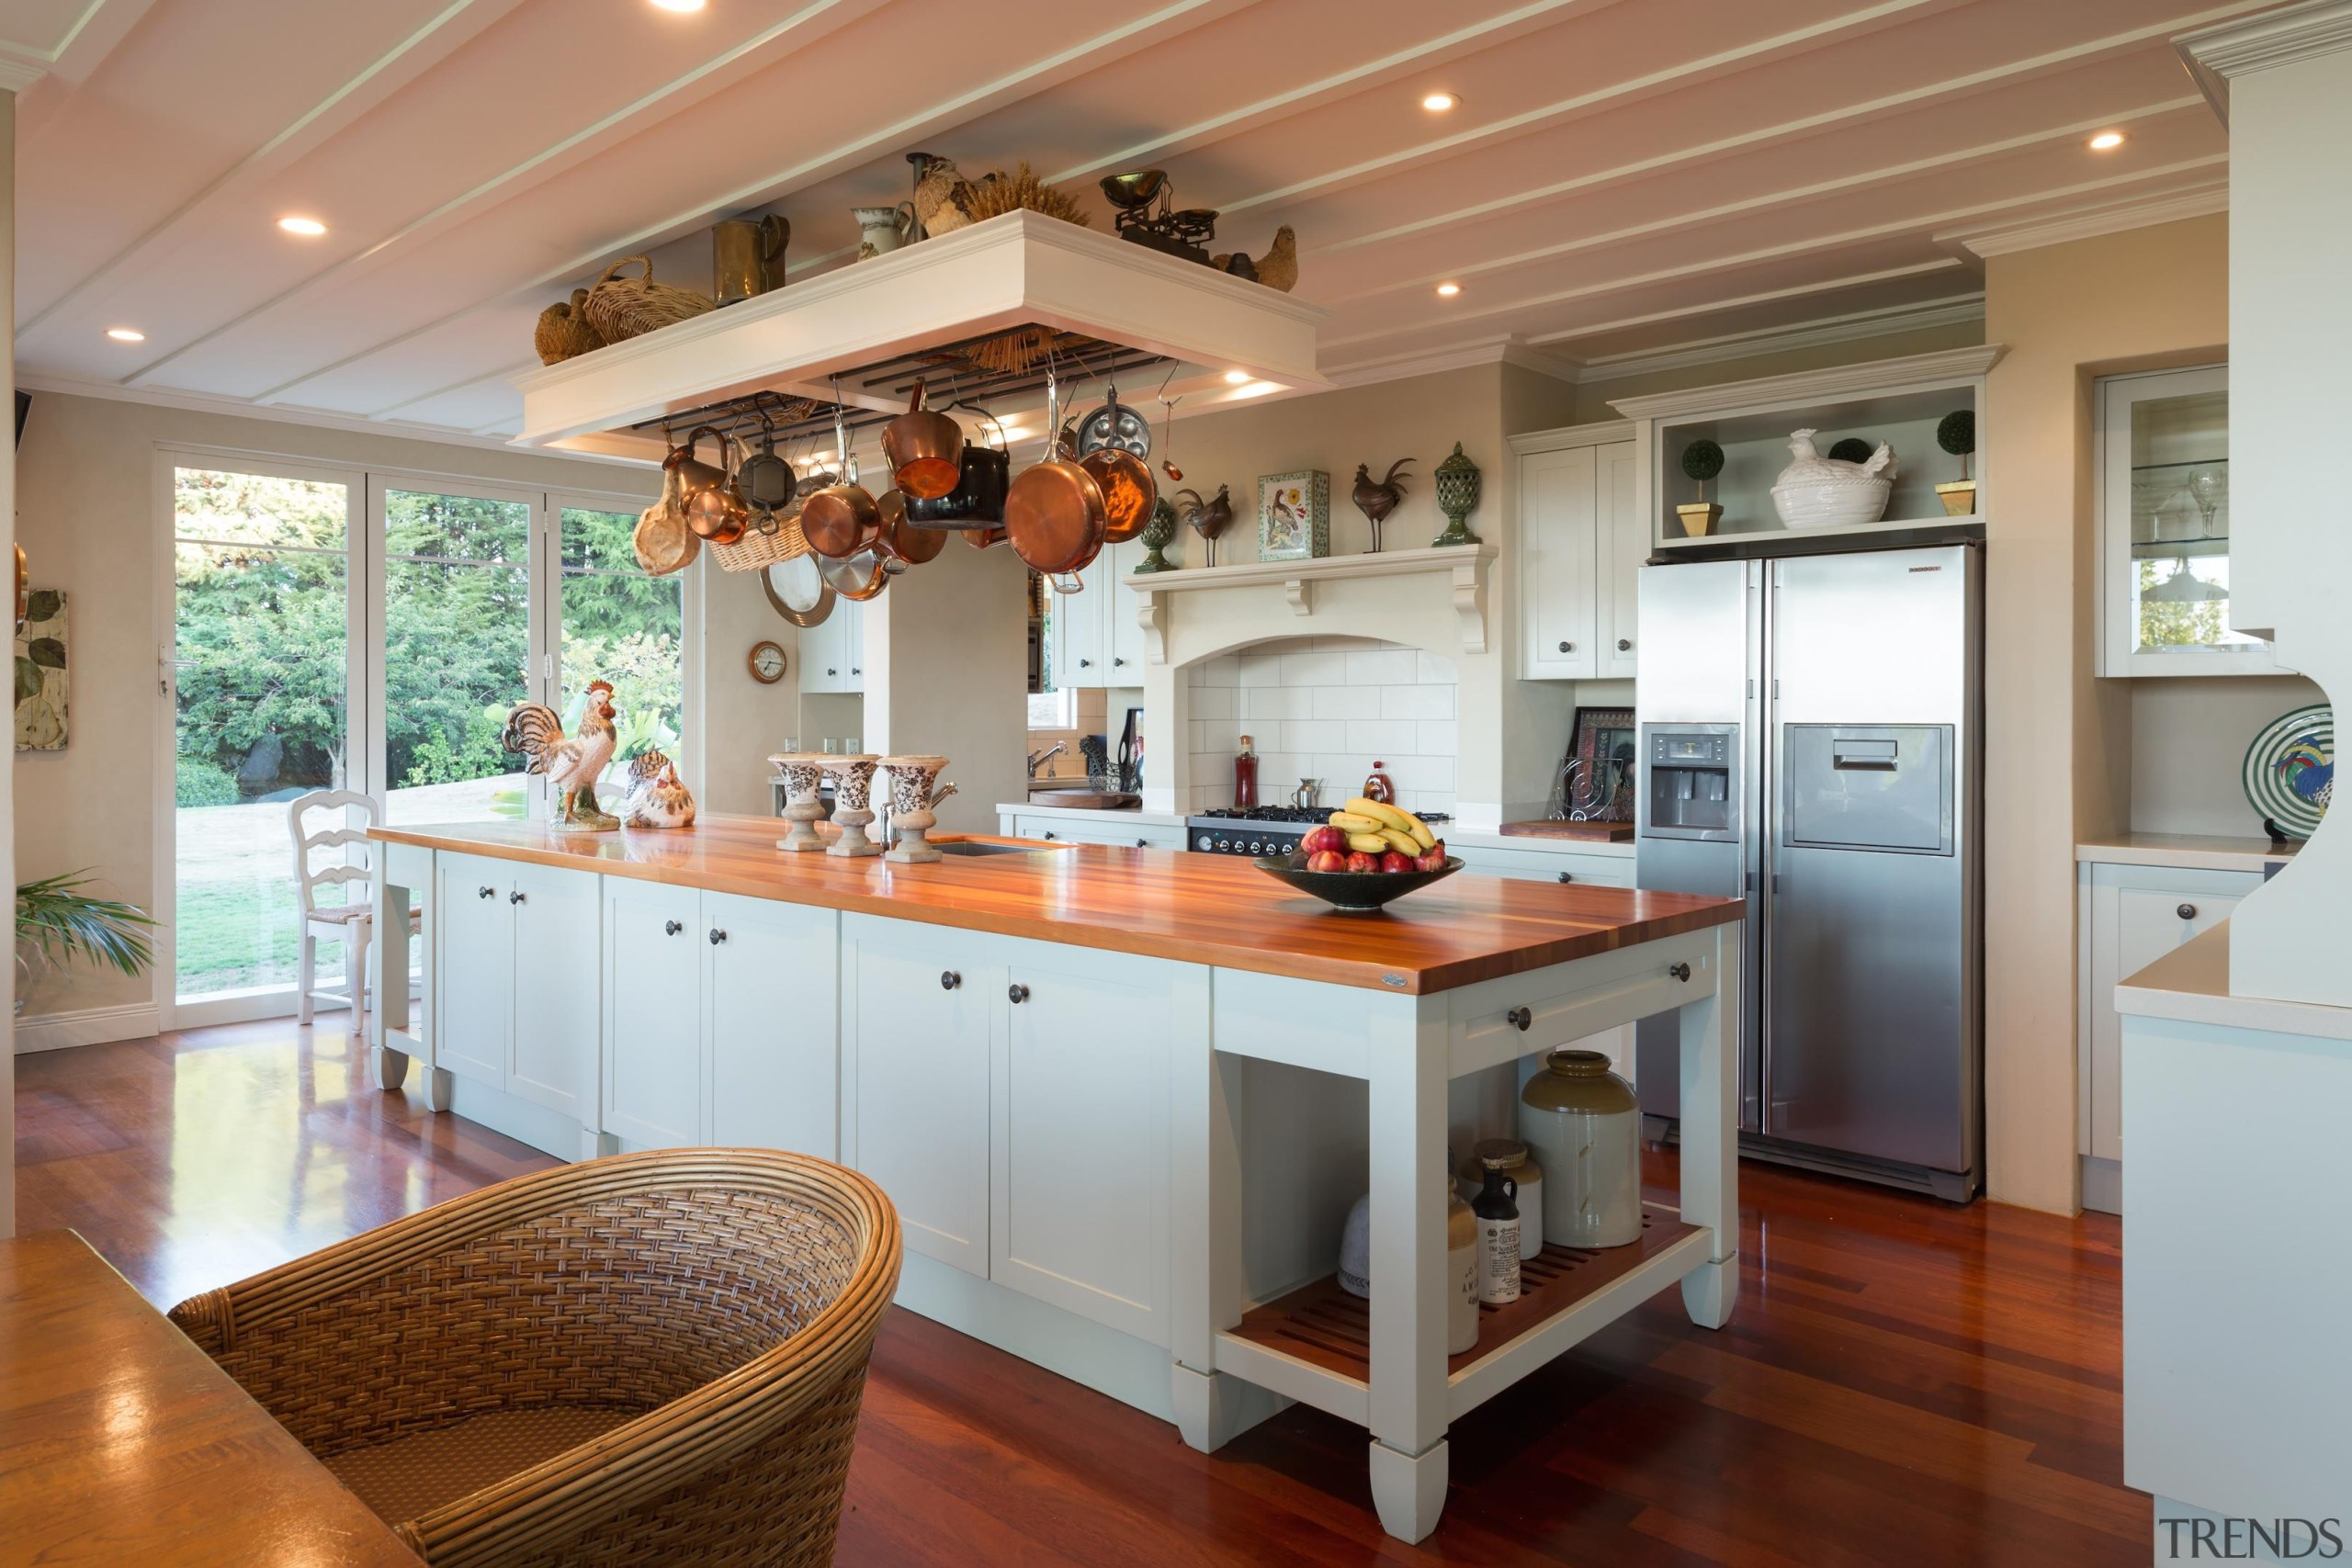 img1060.jpg - img1060.jpg - cabinetry | countertop | cabinetry, countertop, cuisine classique, interior design, kitchen, real estate, room, gray, brown